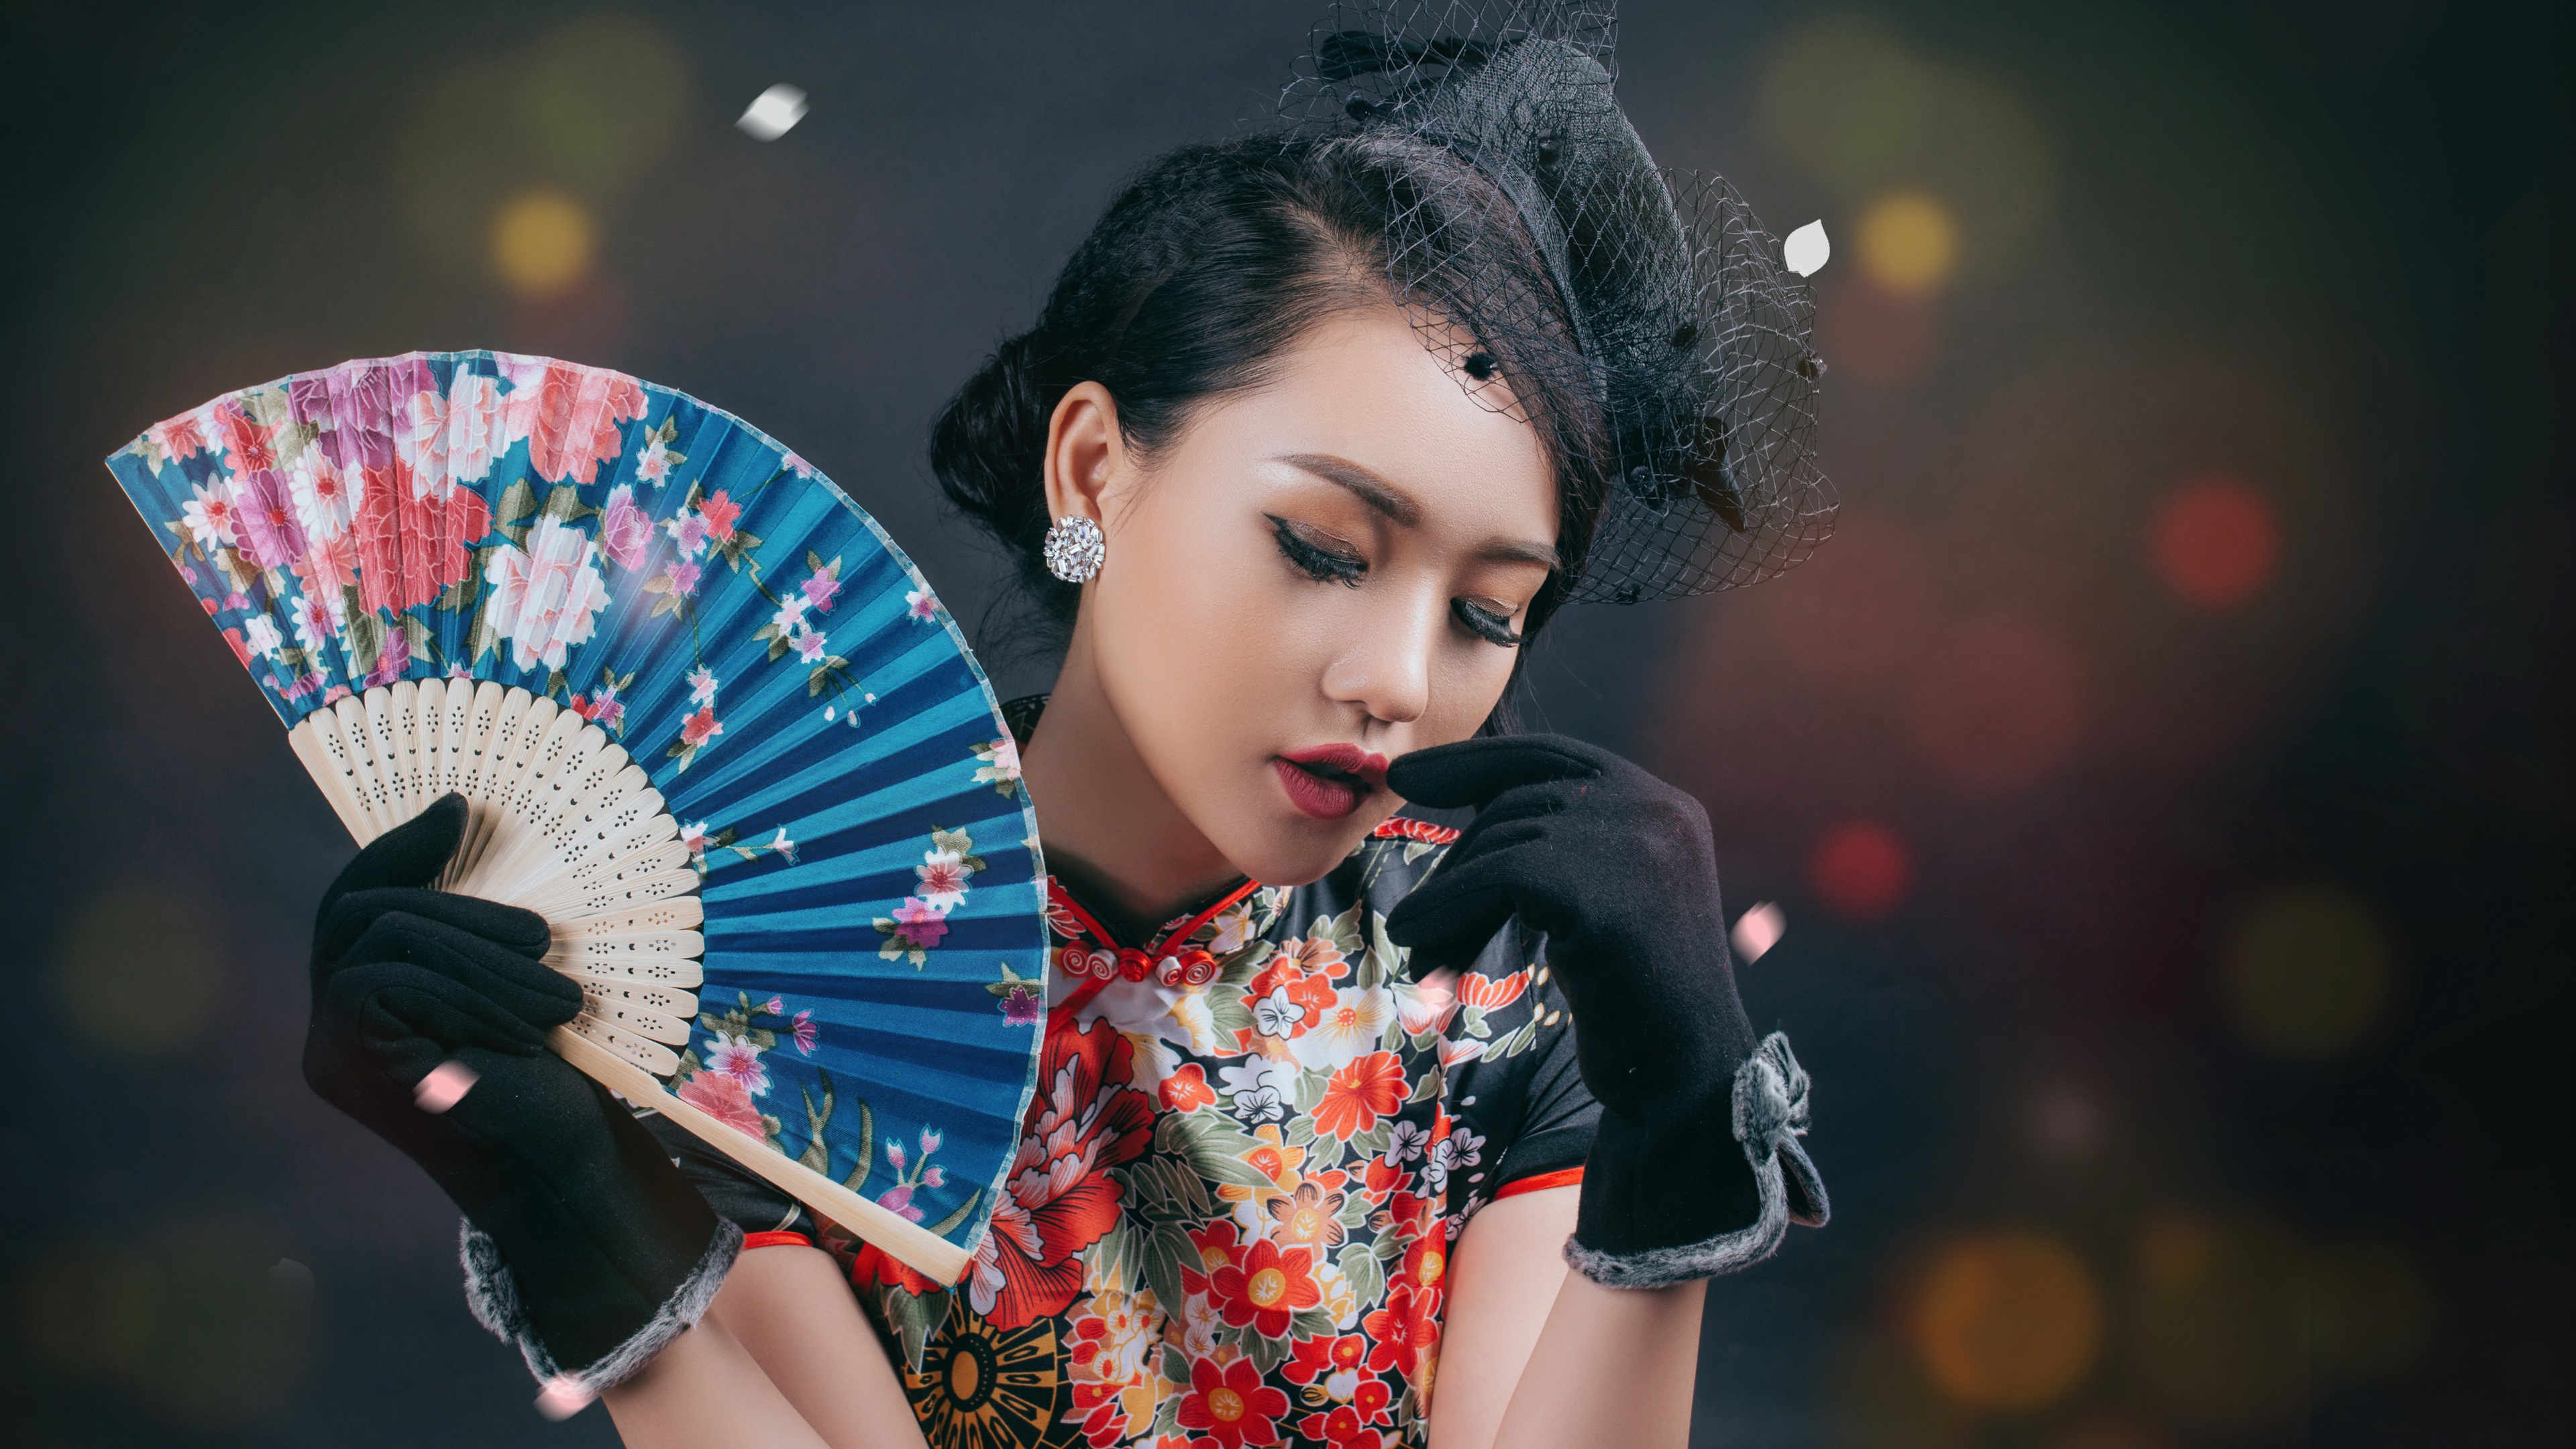 Wallpaper Chinese Girl Retro Style Dress Fan 3840x2160 Uhd 4k